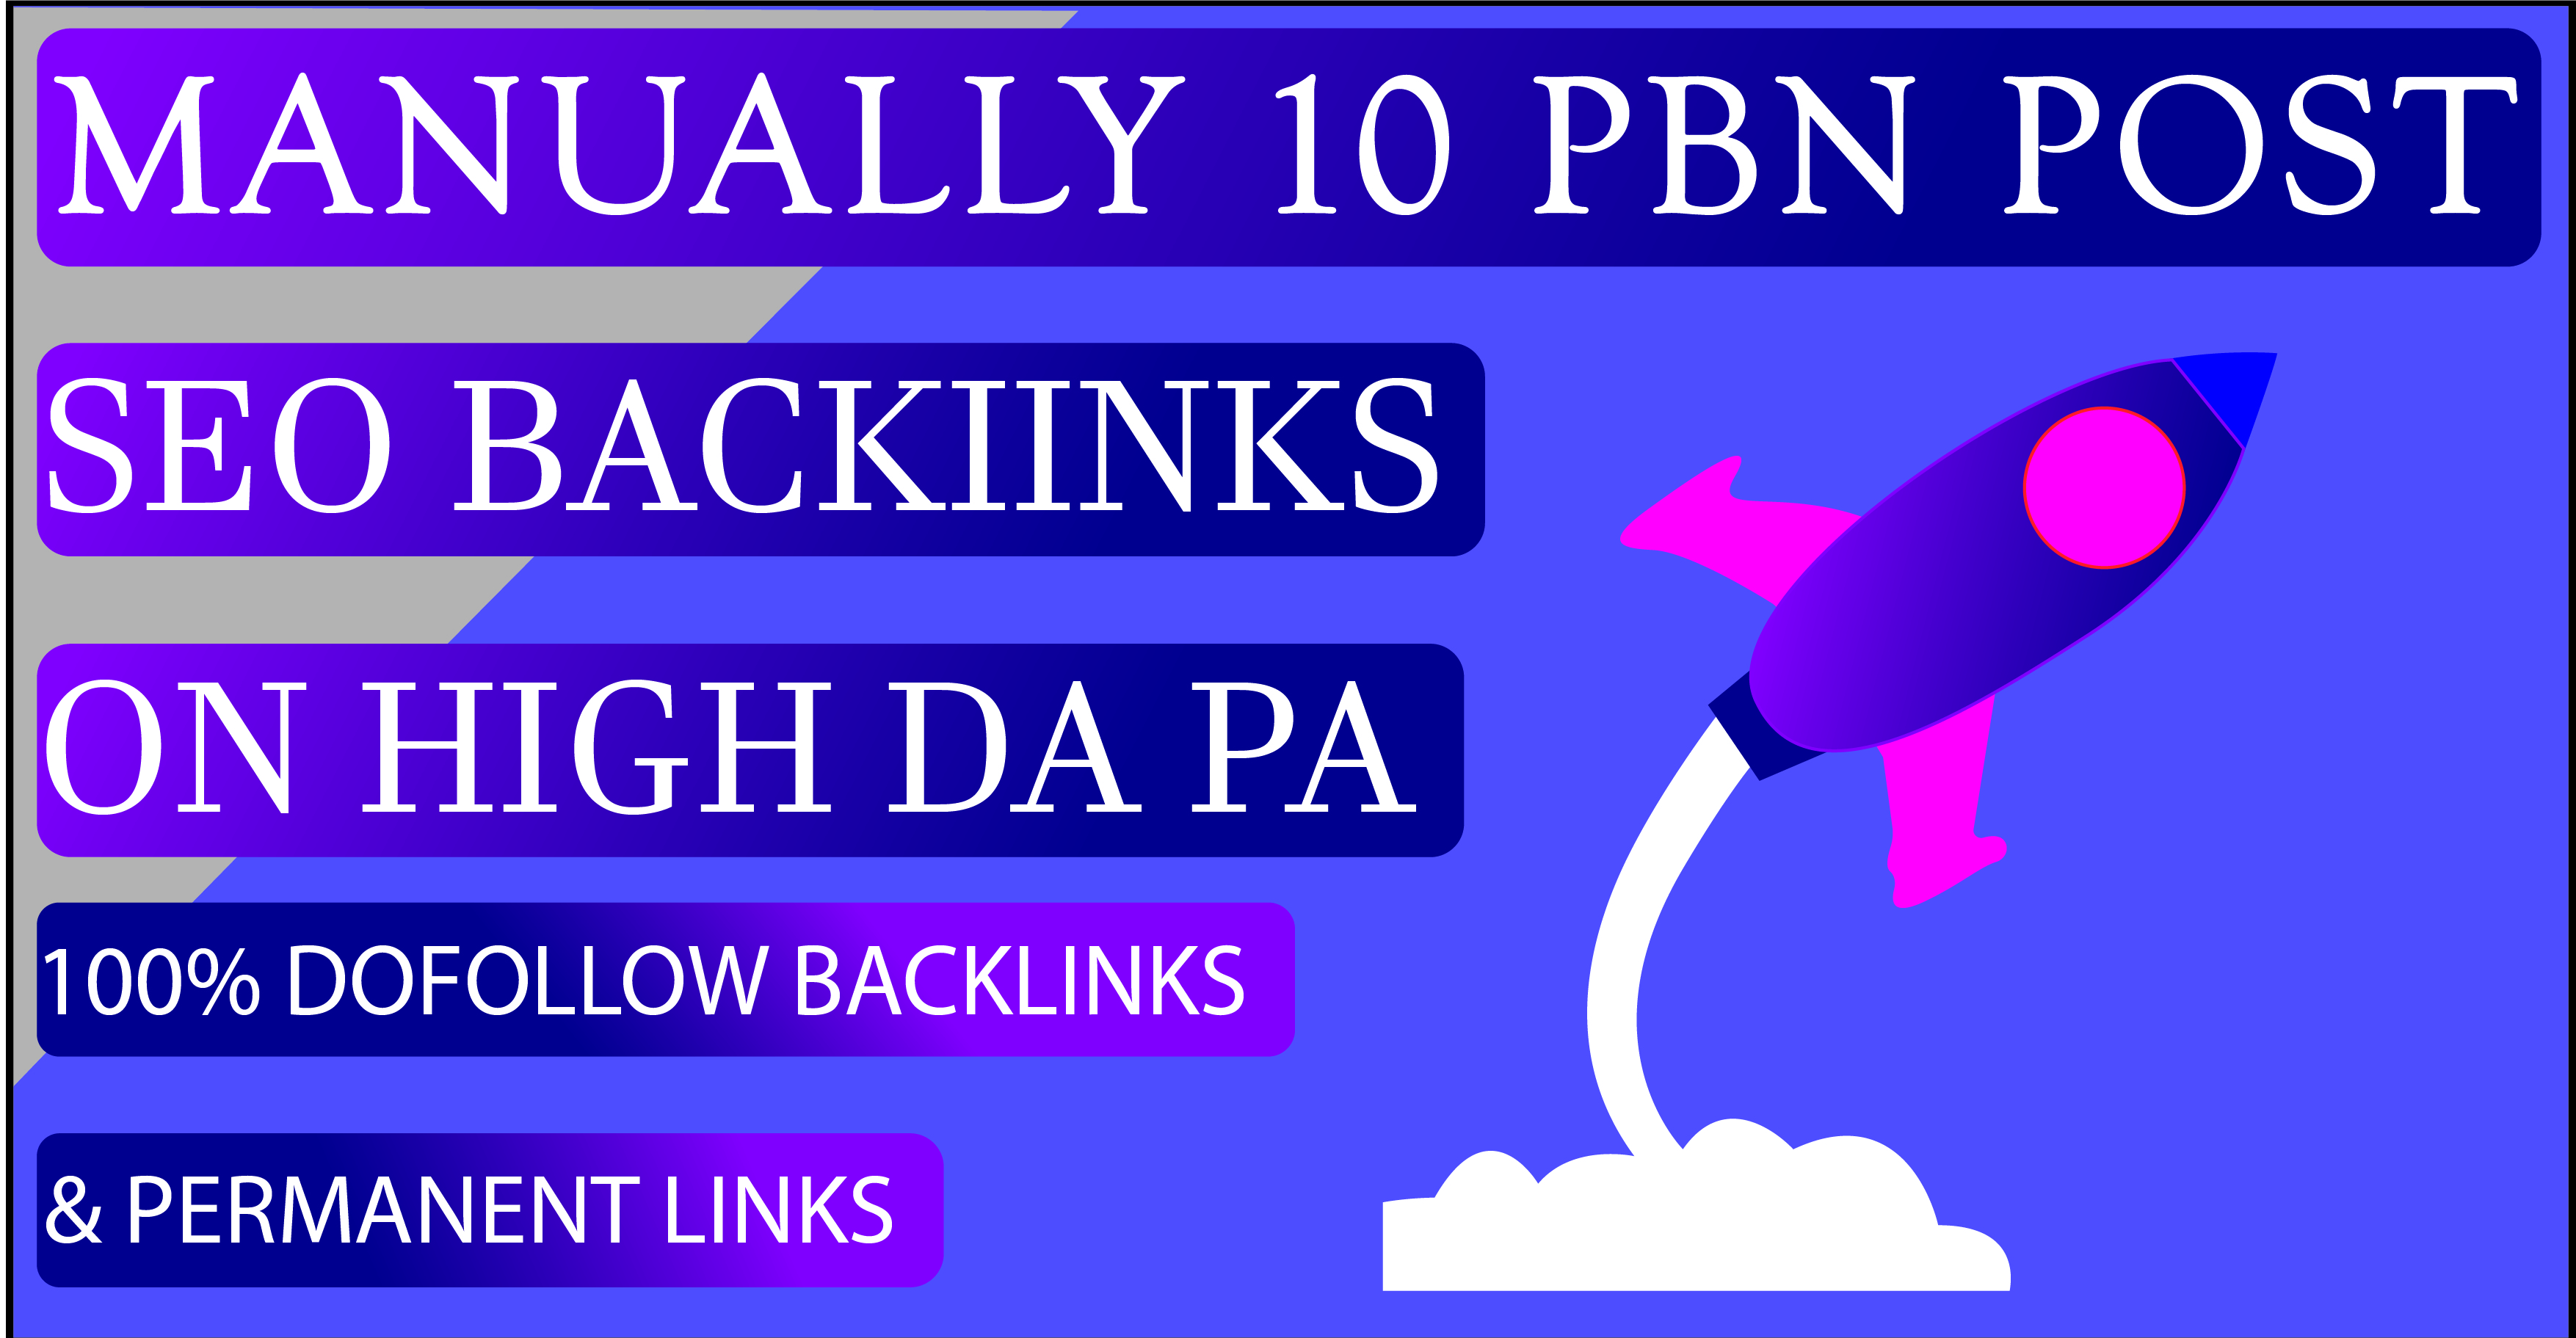 10 PBN Post ON Unique Domains Seo Backlinks With High DA PA